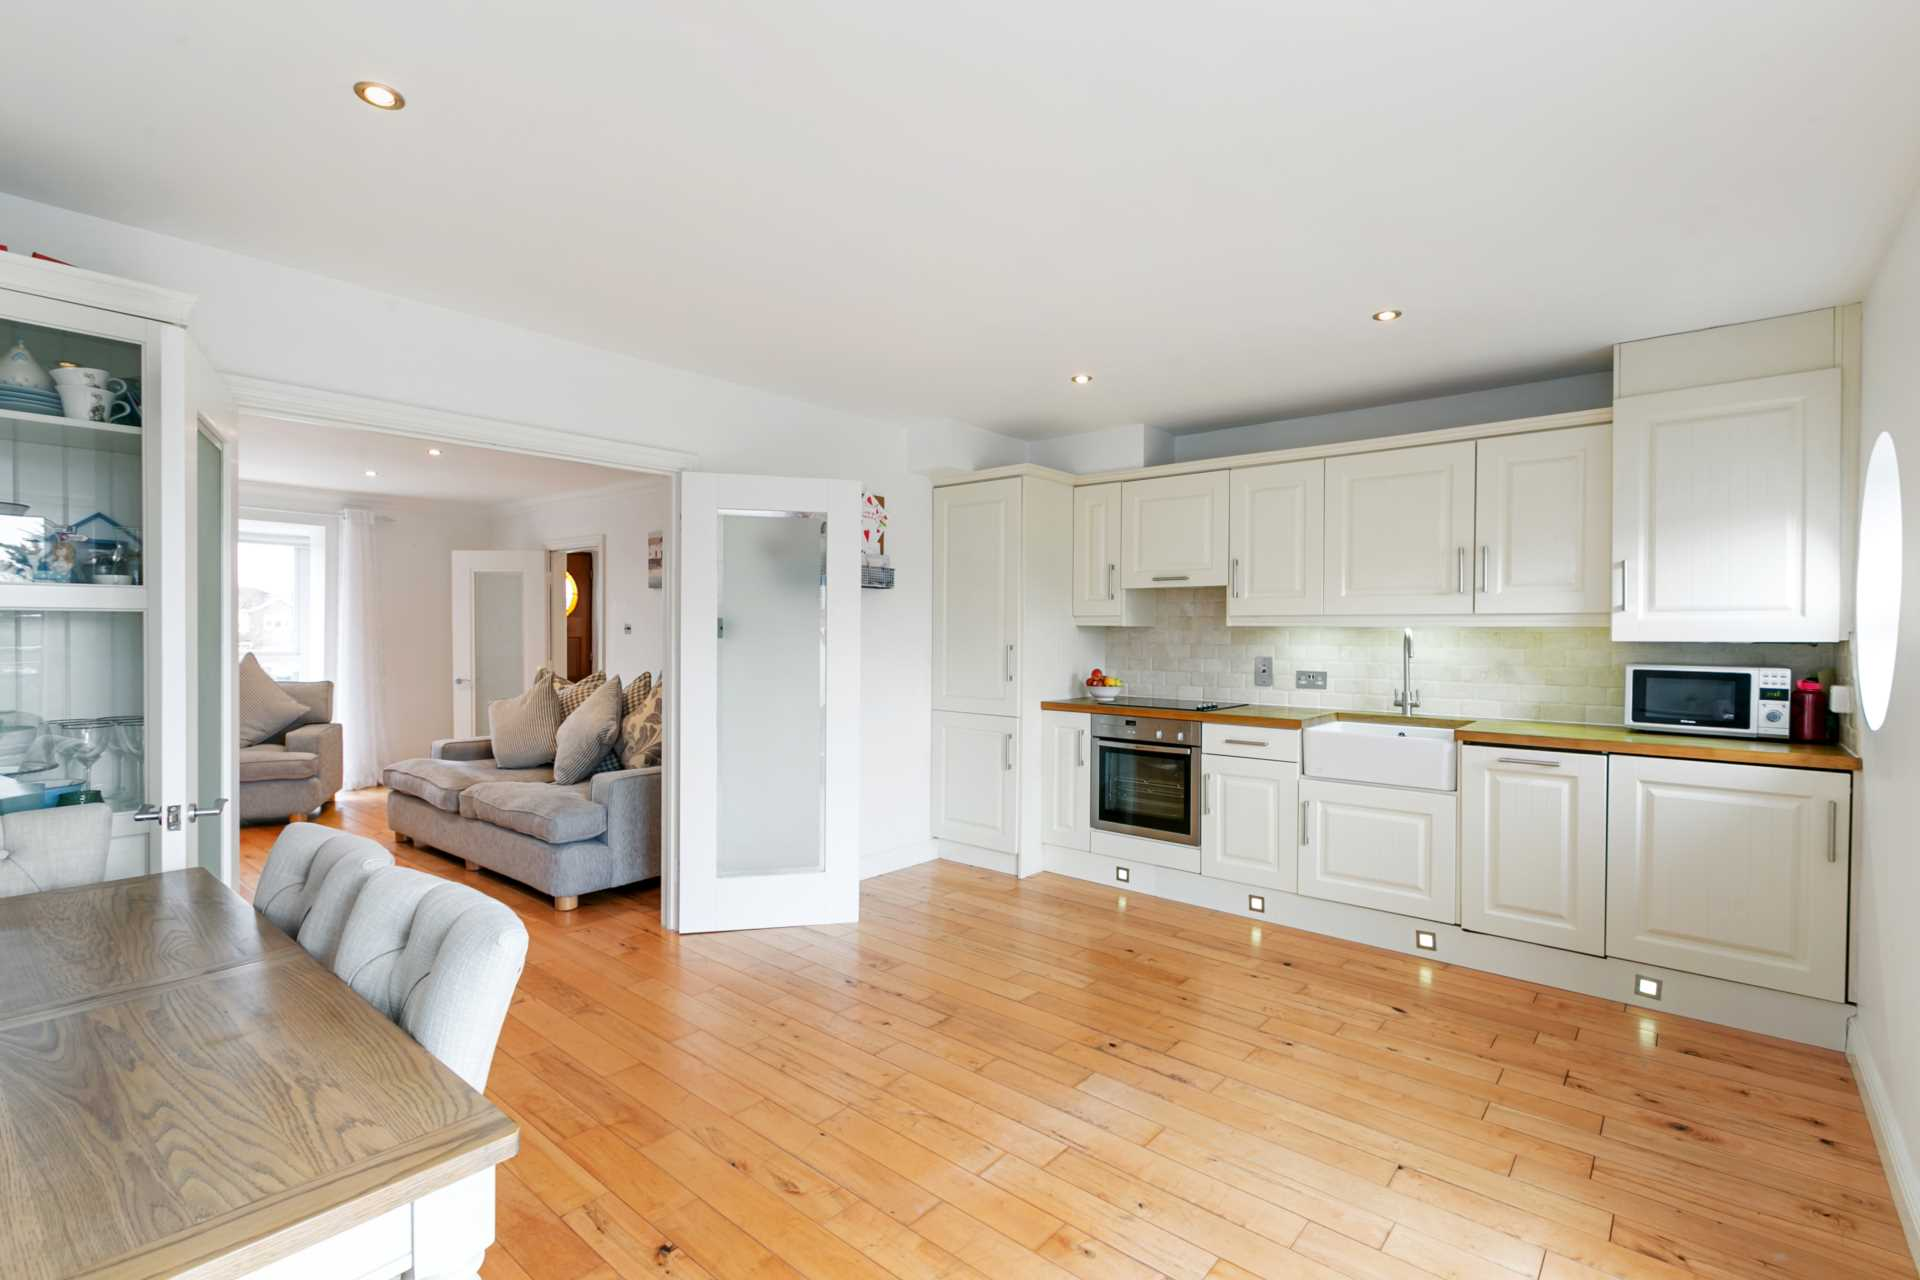 8 Priory Hall, Manor Grove, Terenure, Dublin 12, Image 3